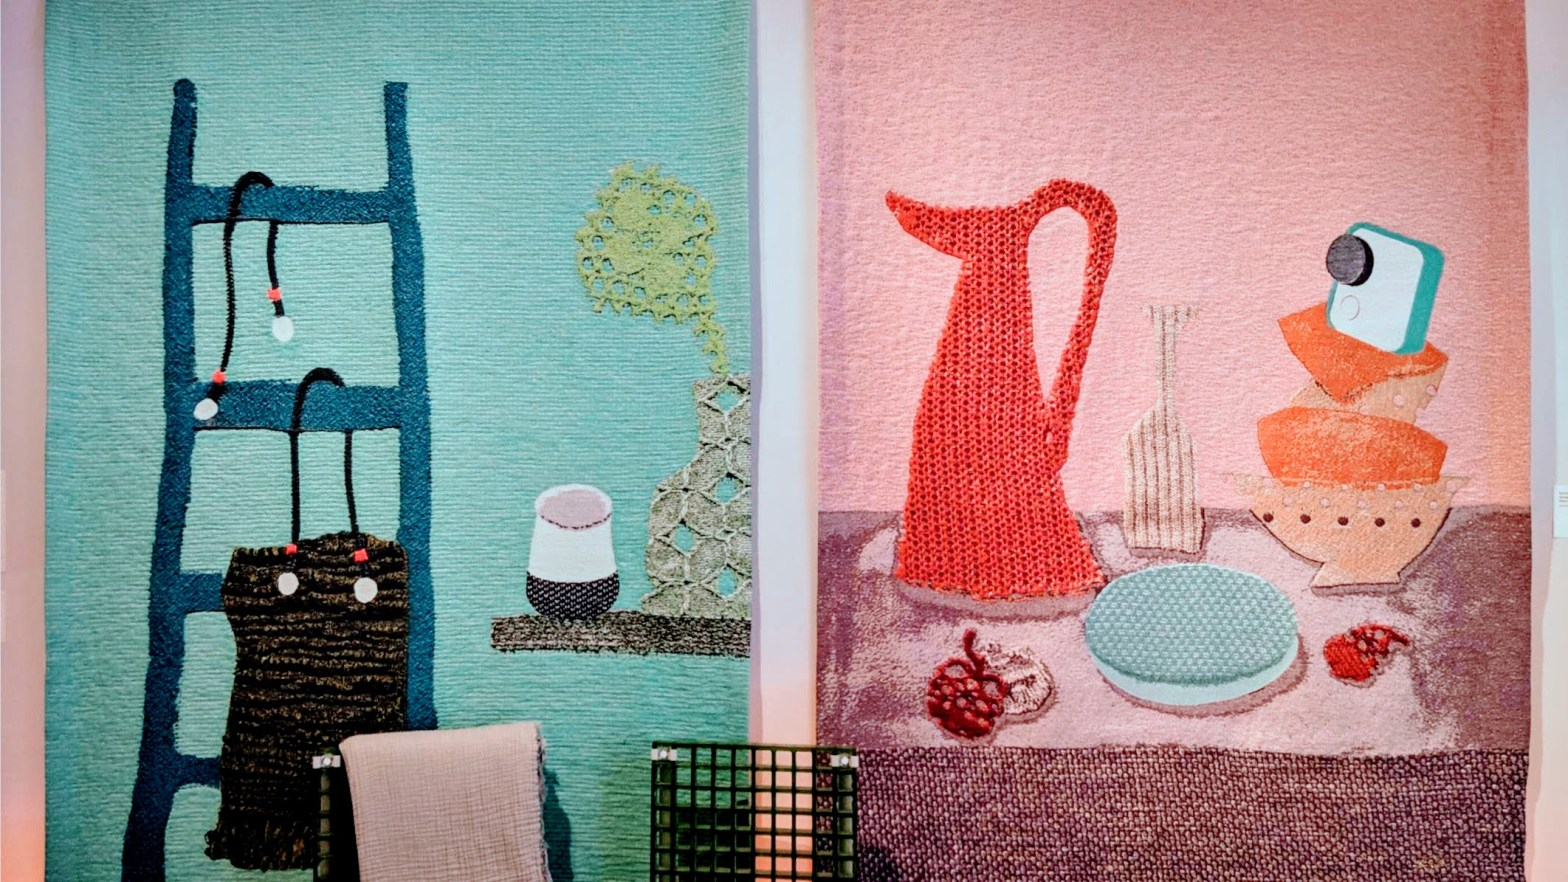 Woven wallhangings depicting still-life scenes of typical household objects, including Google Home devices